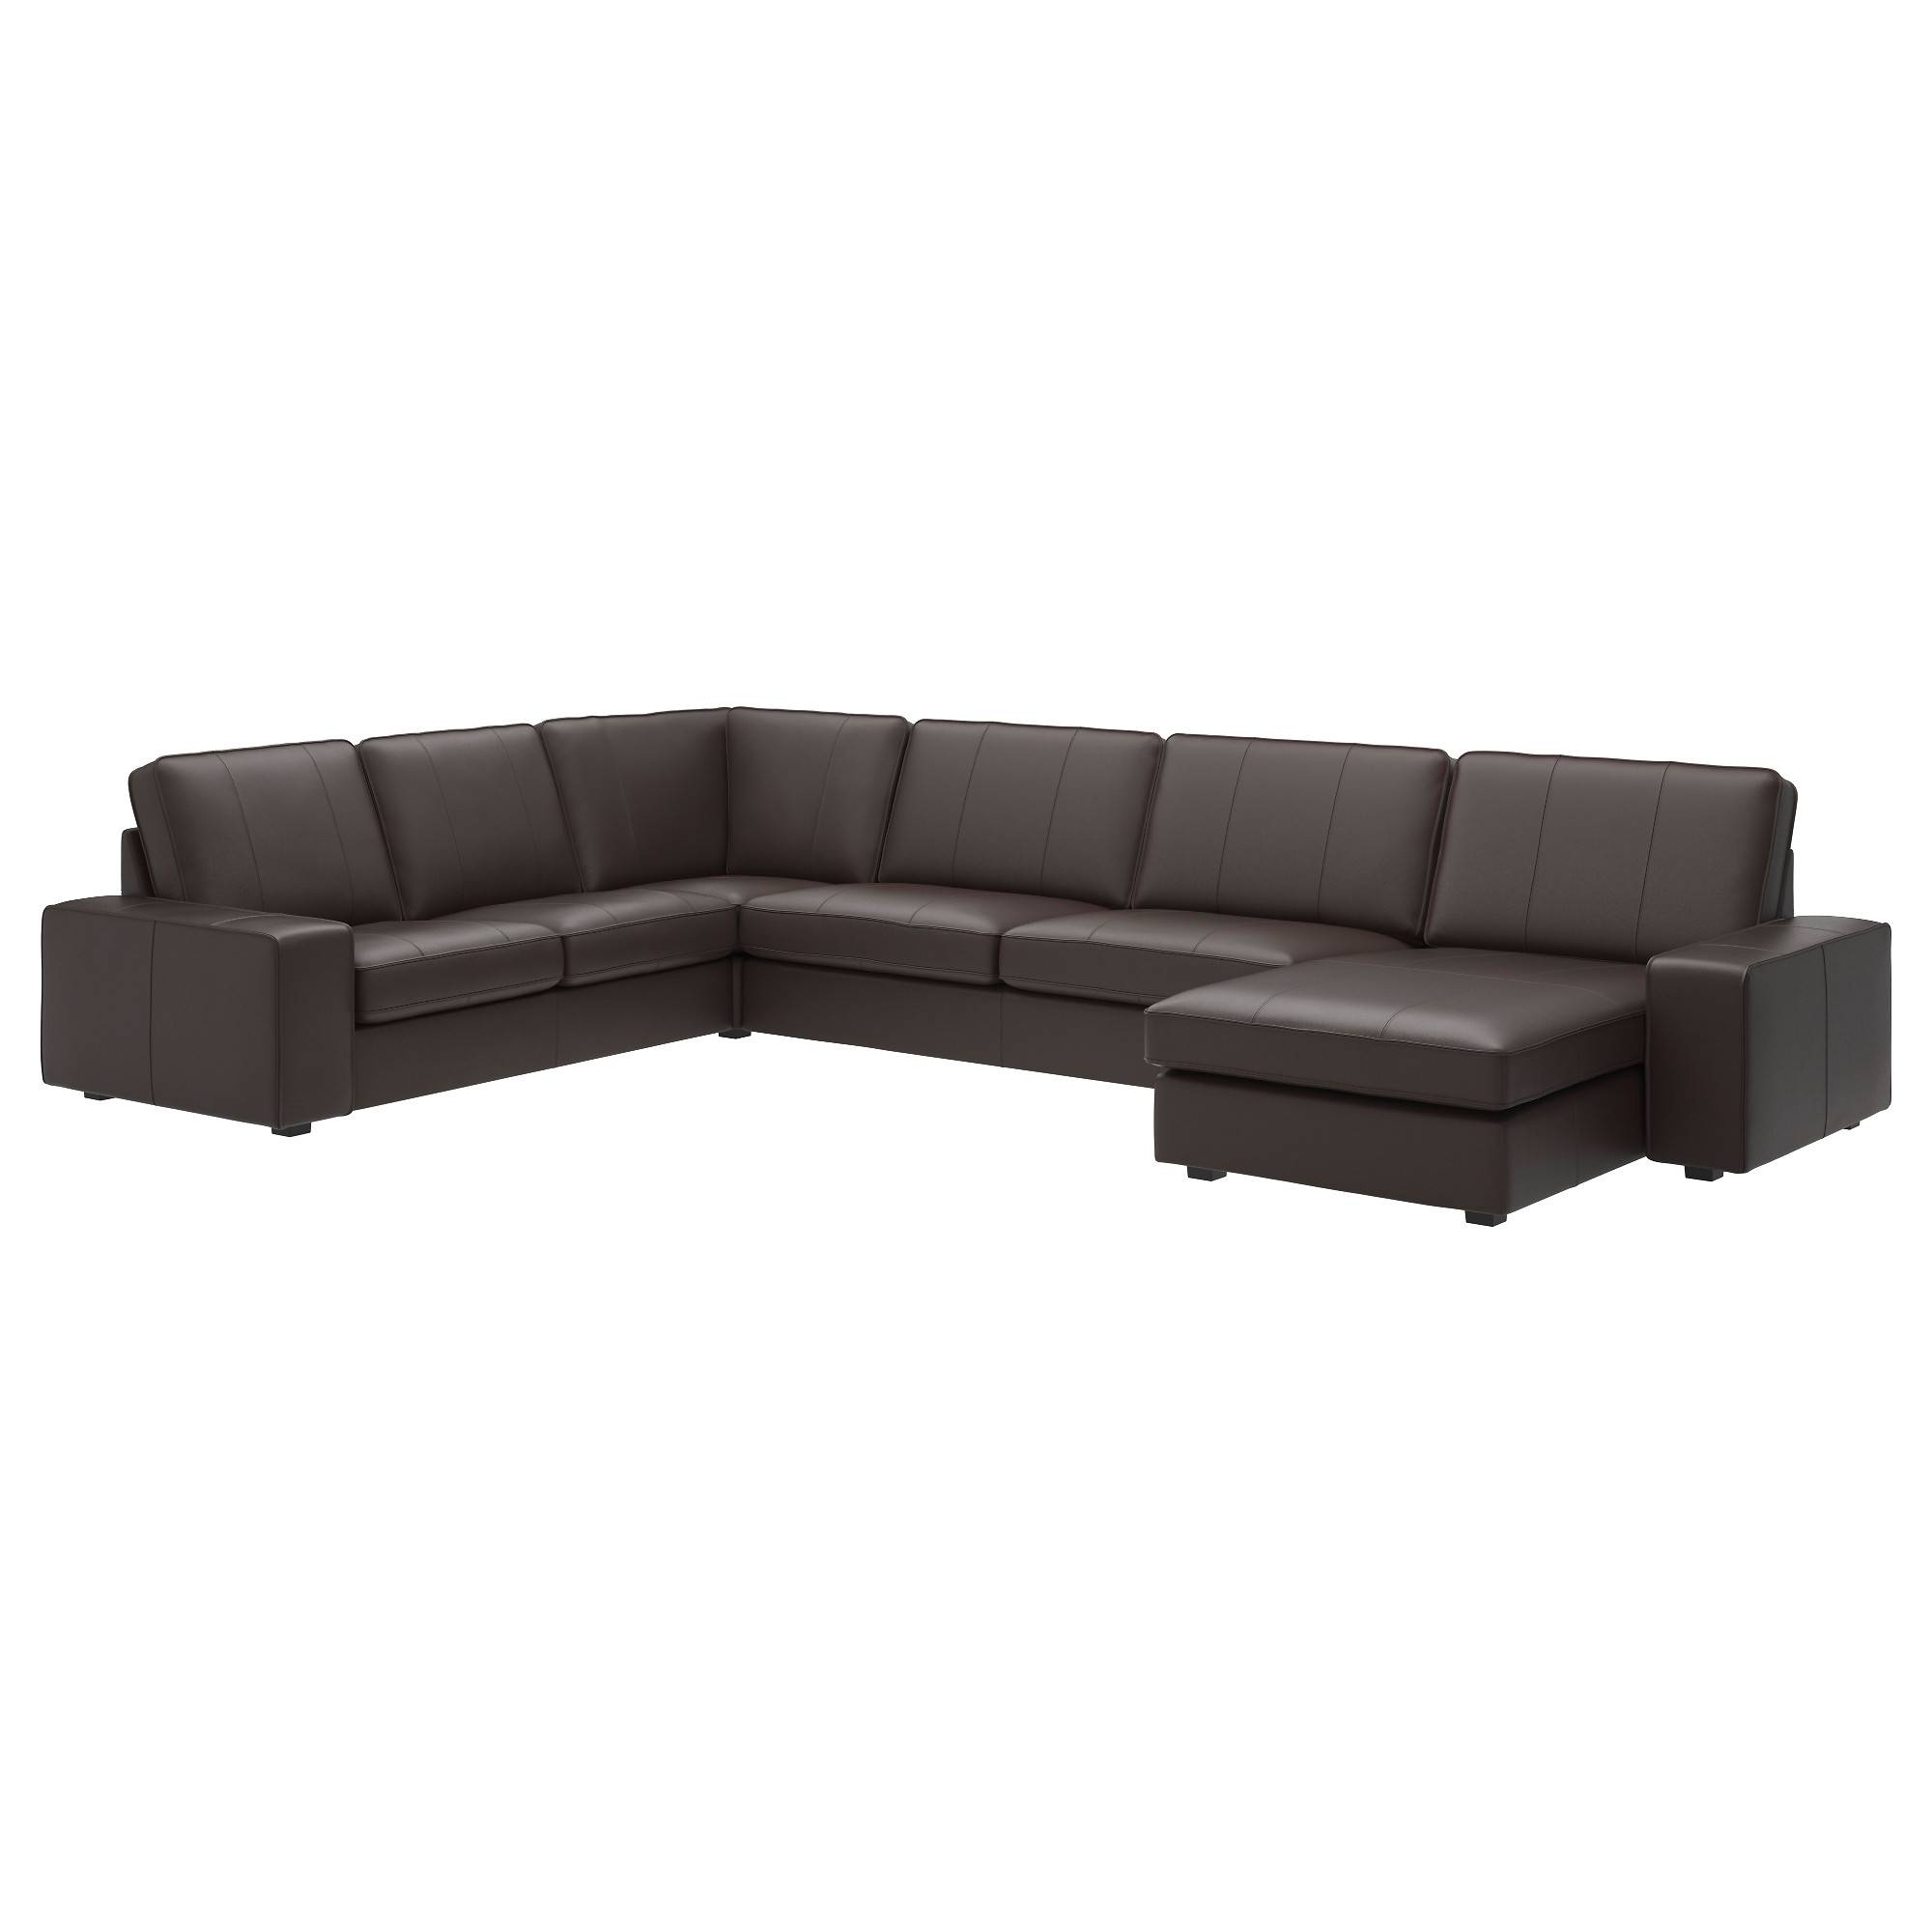 Sectional Sofas & Couches - Ikea within 6 Piece Leather Sectional Sofa (Image 24 of 30)